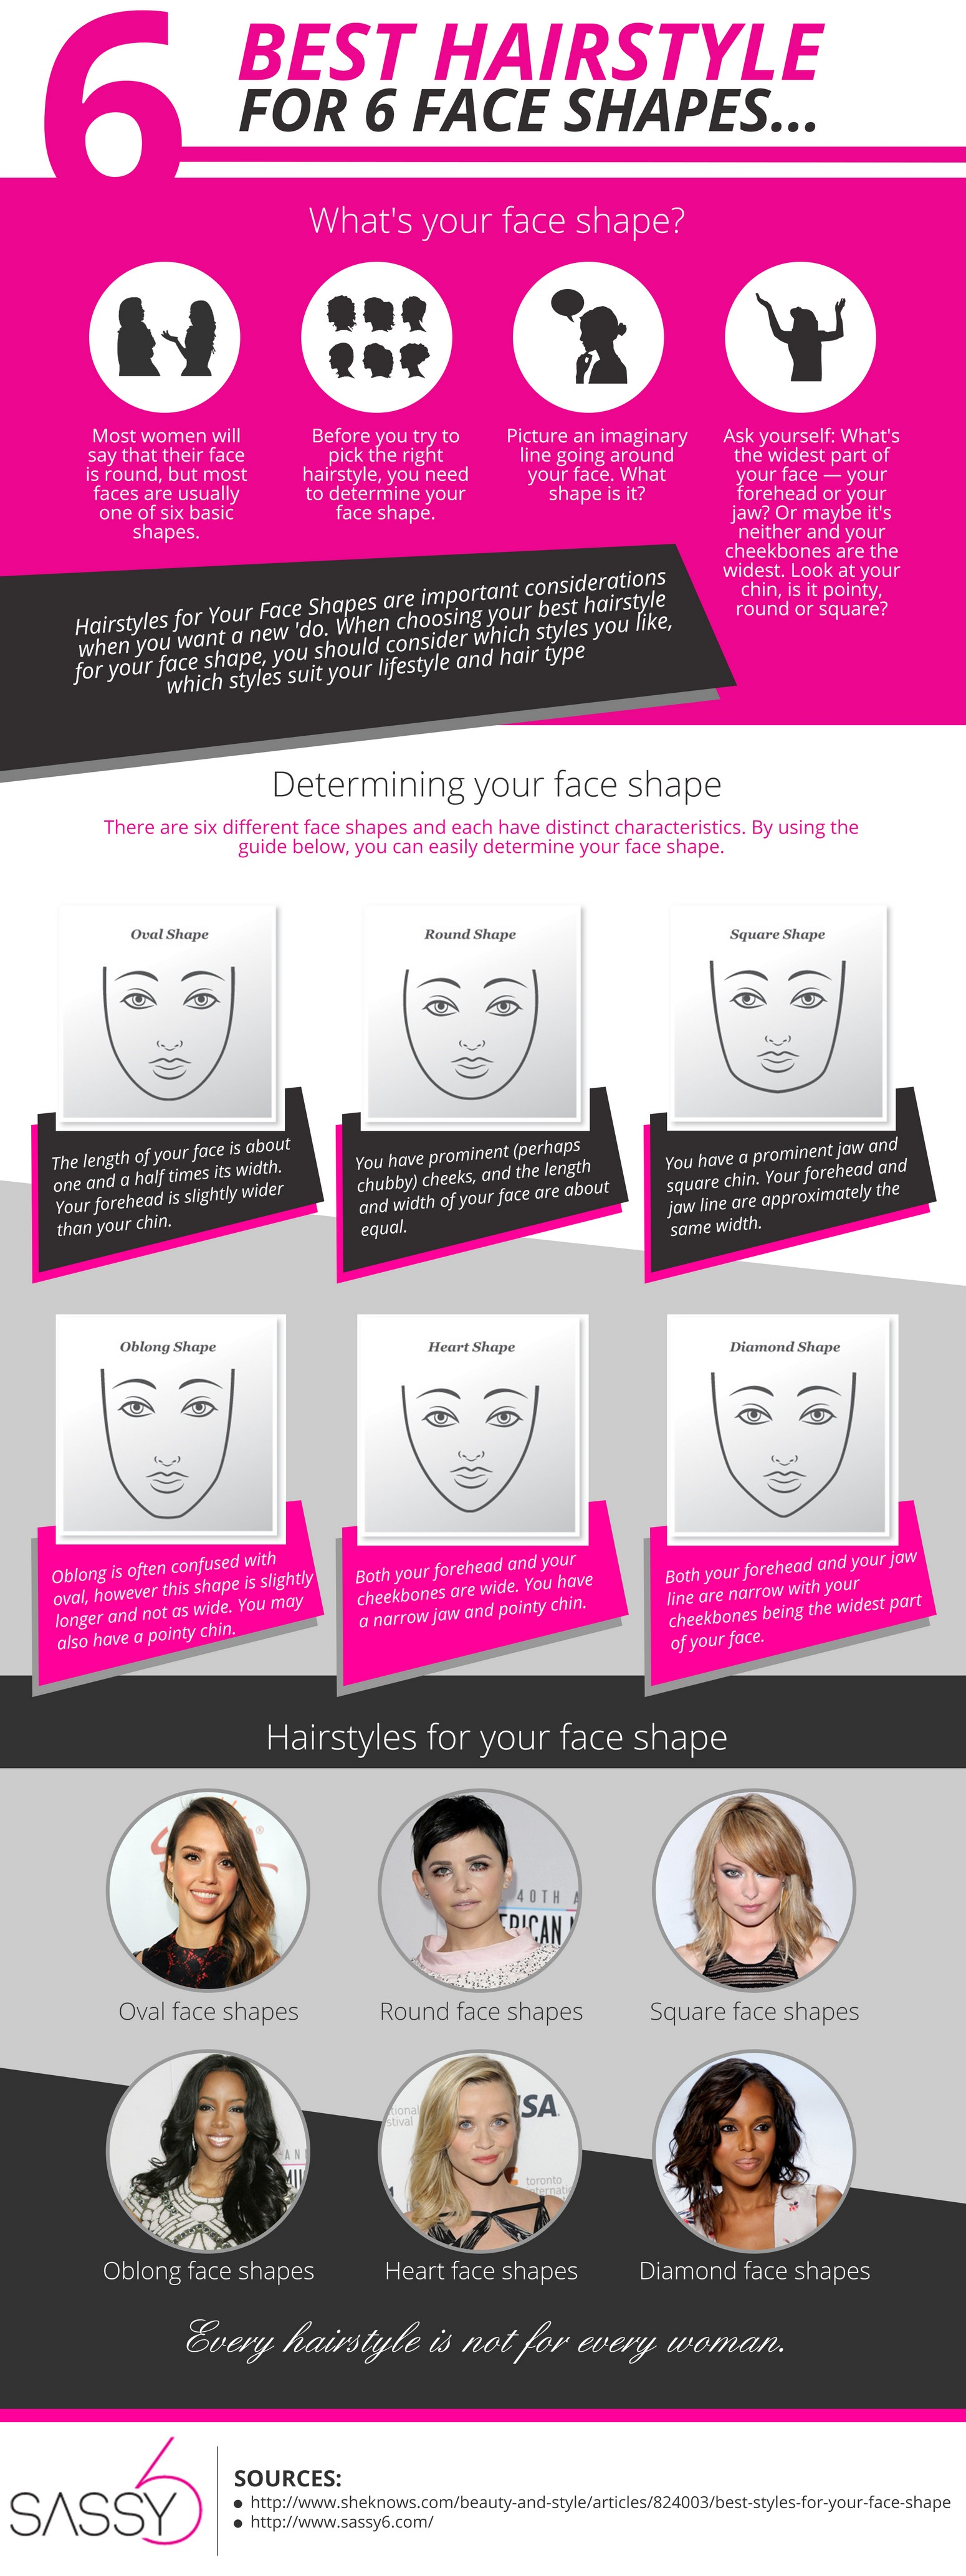 hairstyle for 6 face shapes